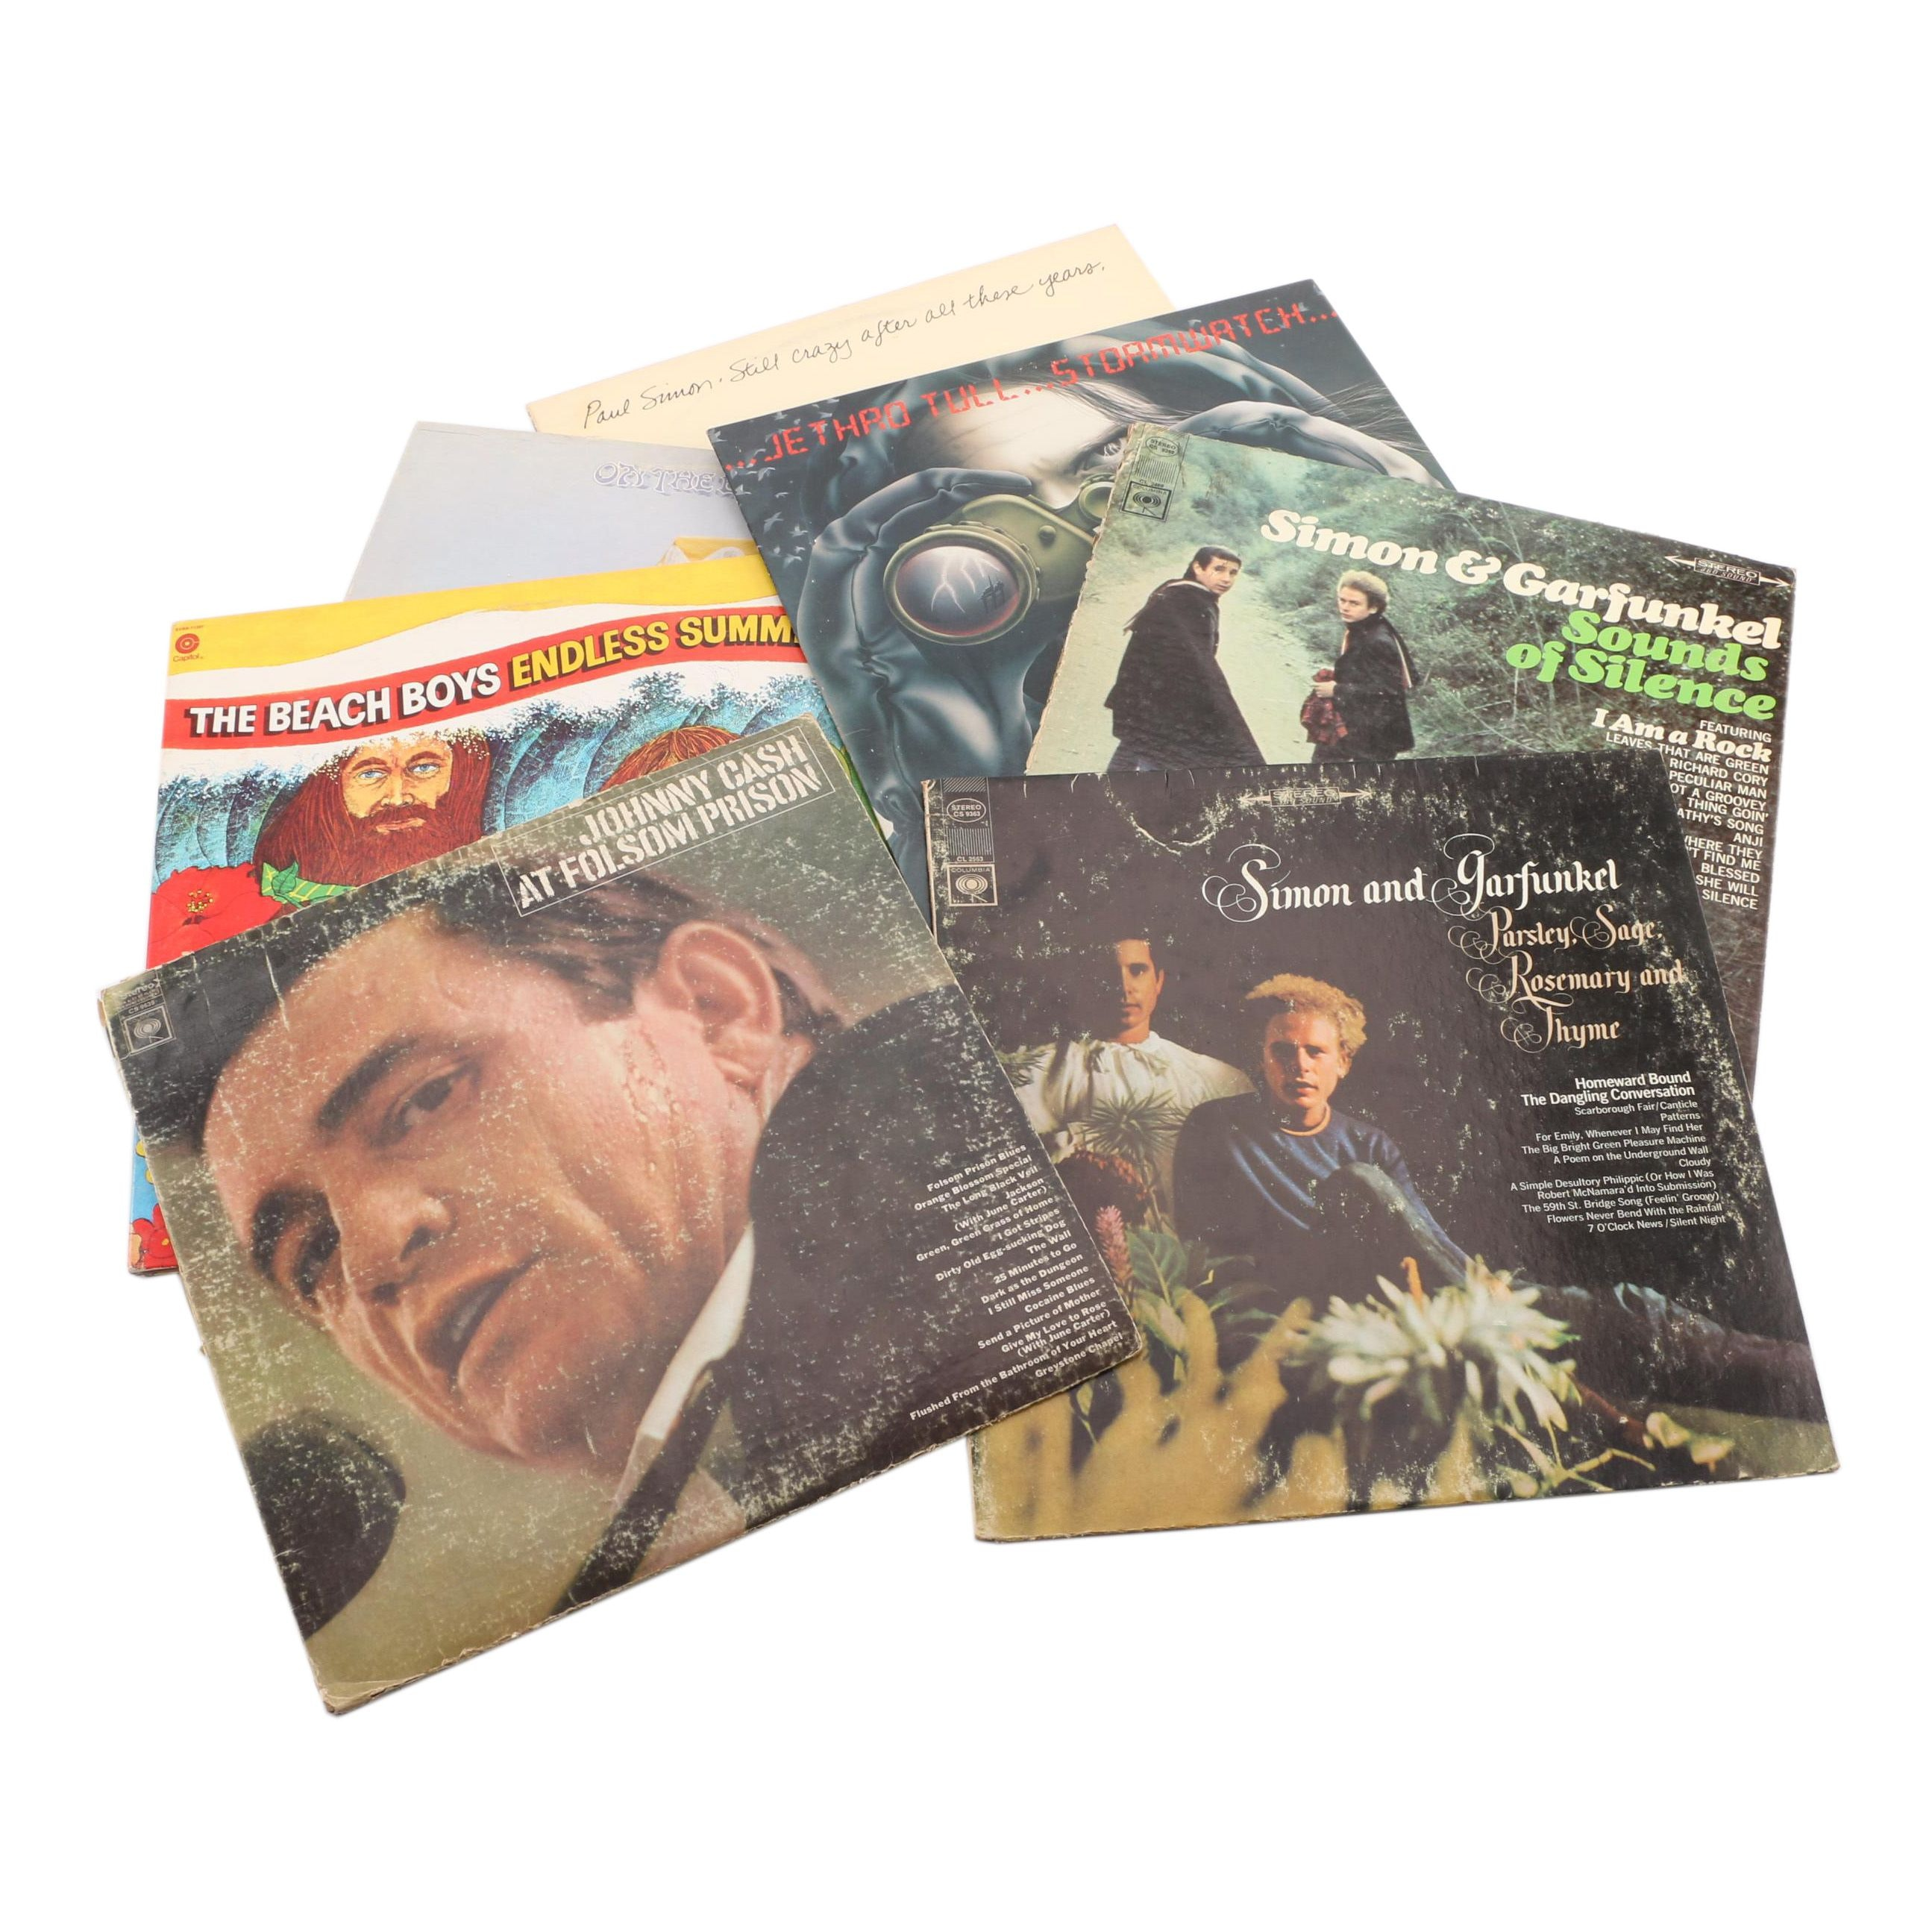 Classical Records Featuring The Beach Boys and Johnny Cash